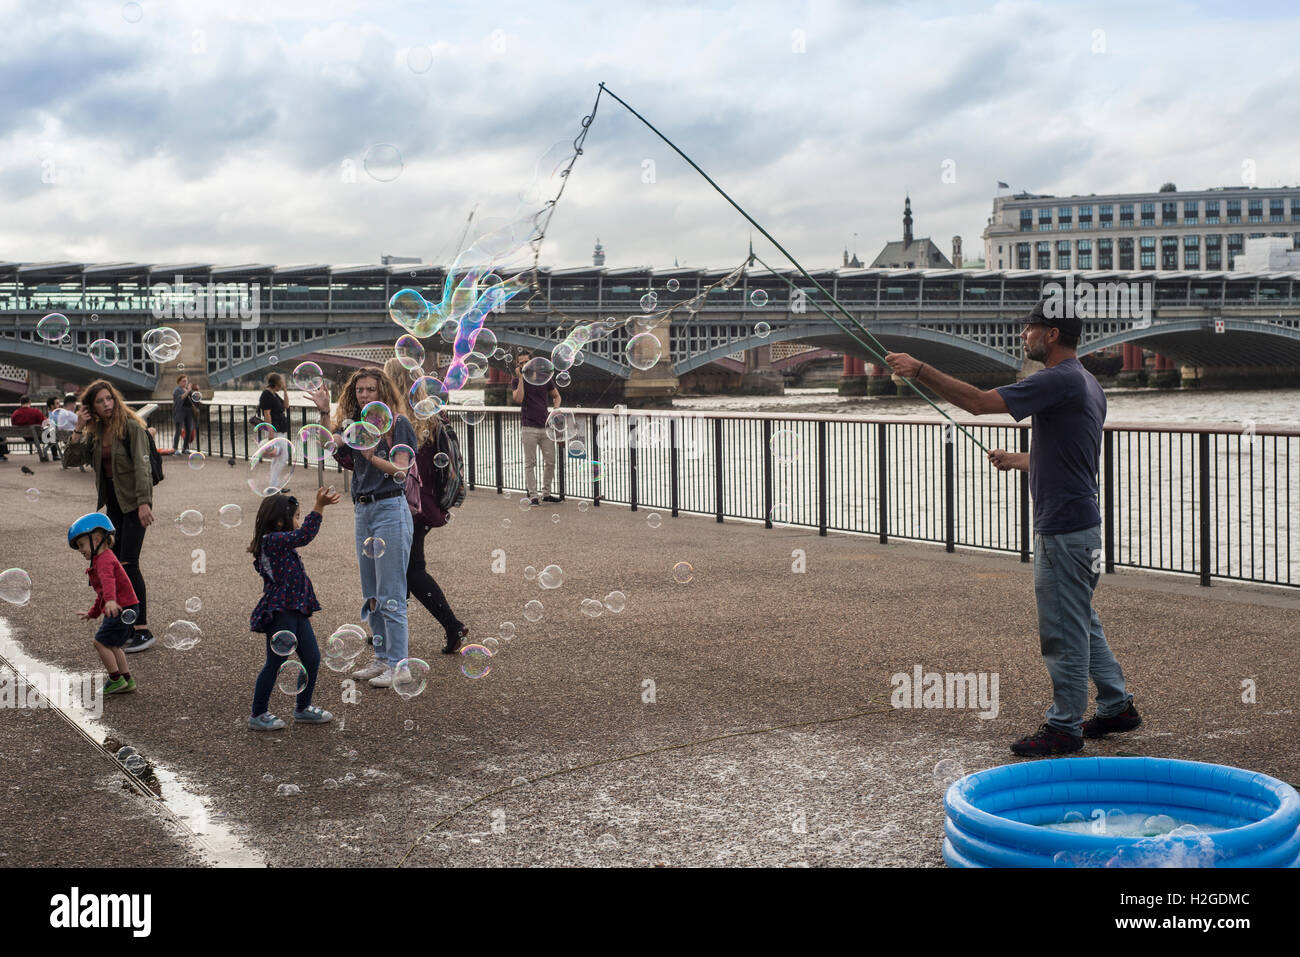 Street entertainer on London's Southbank blowing bubbles for children - Stock Image